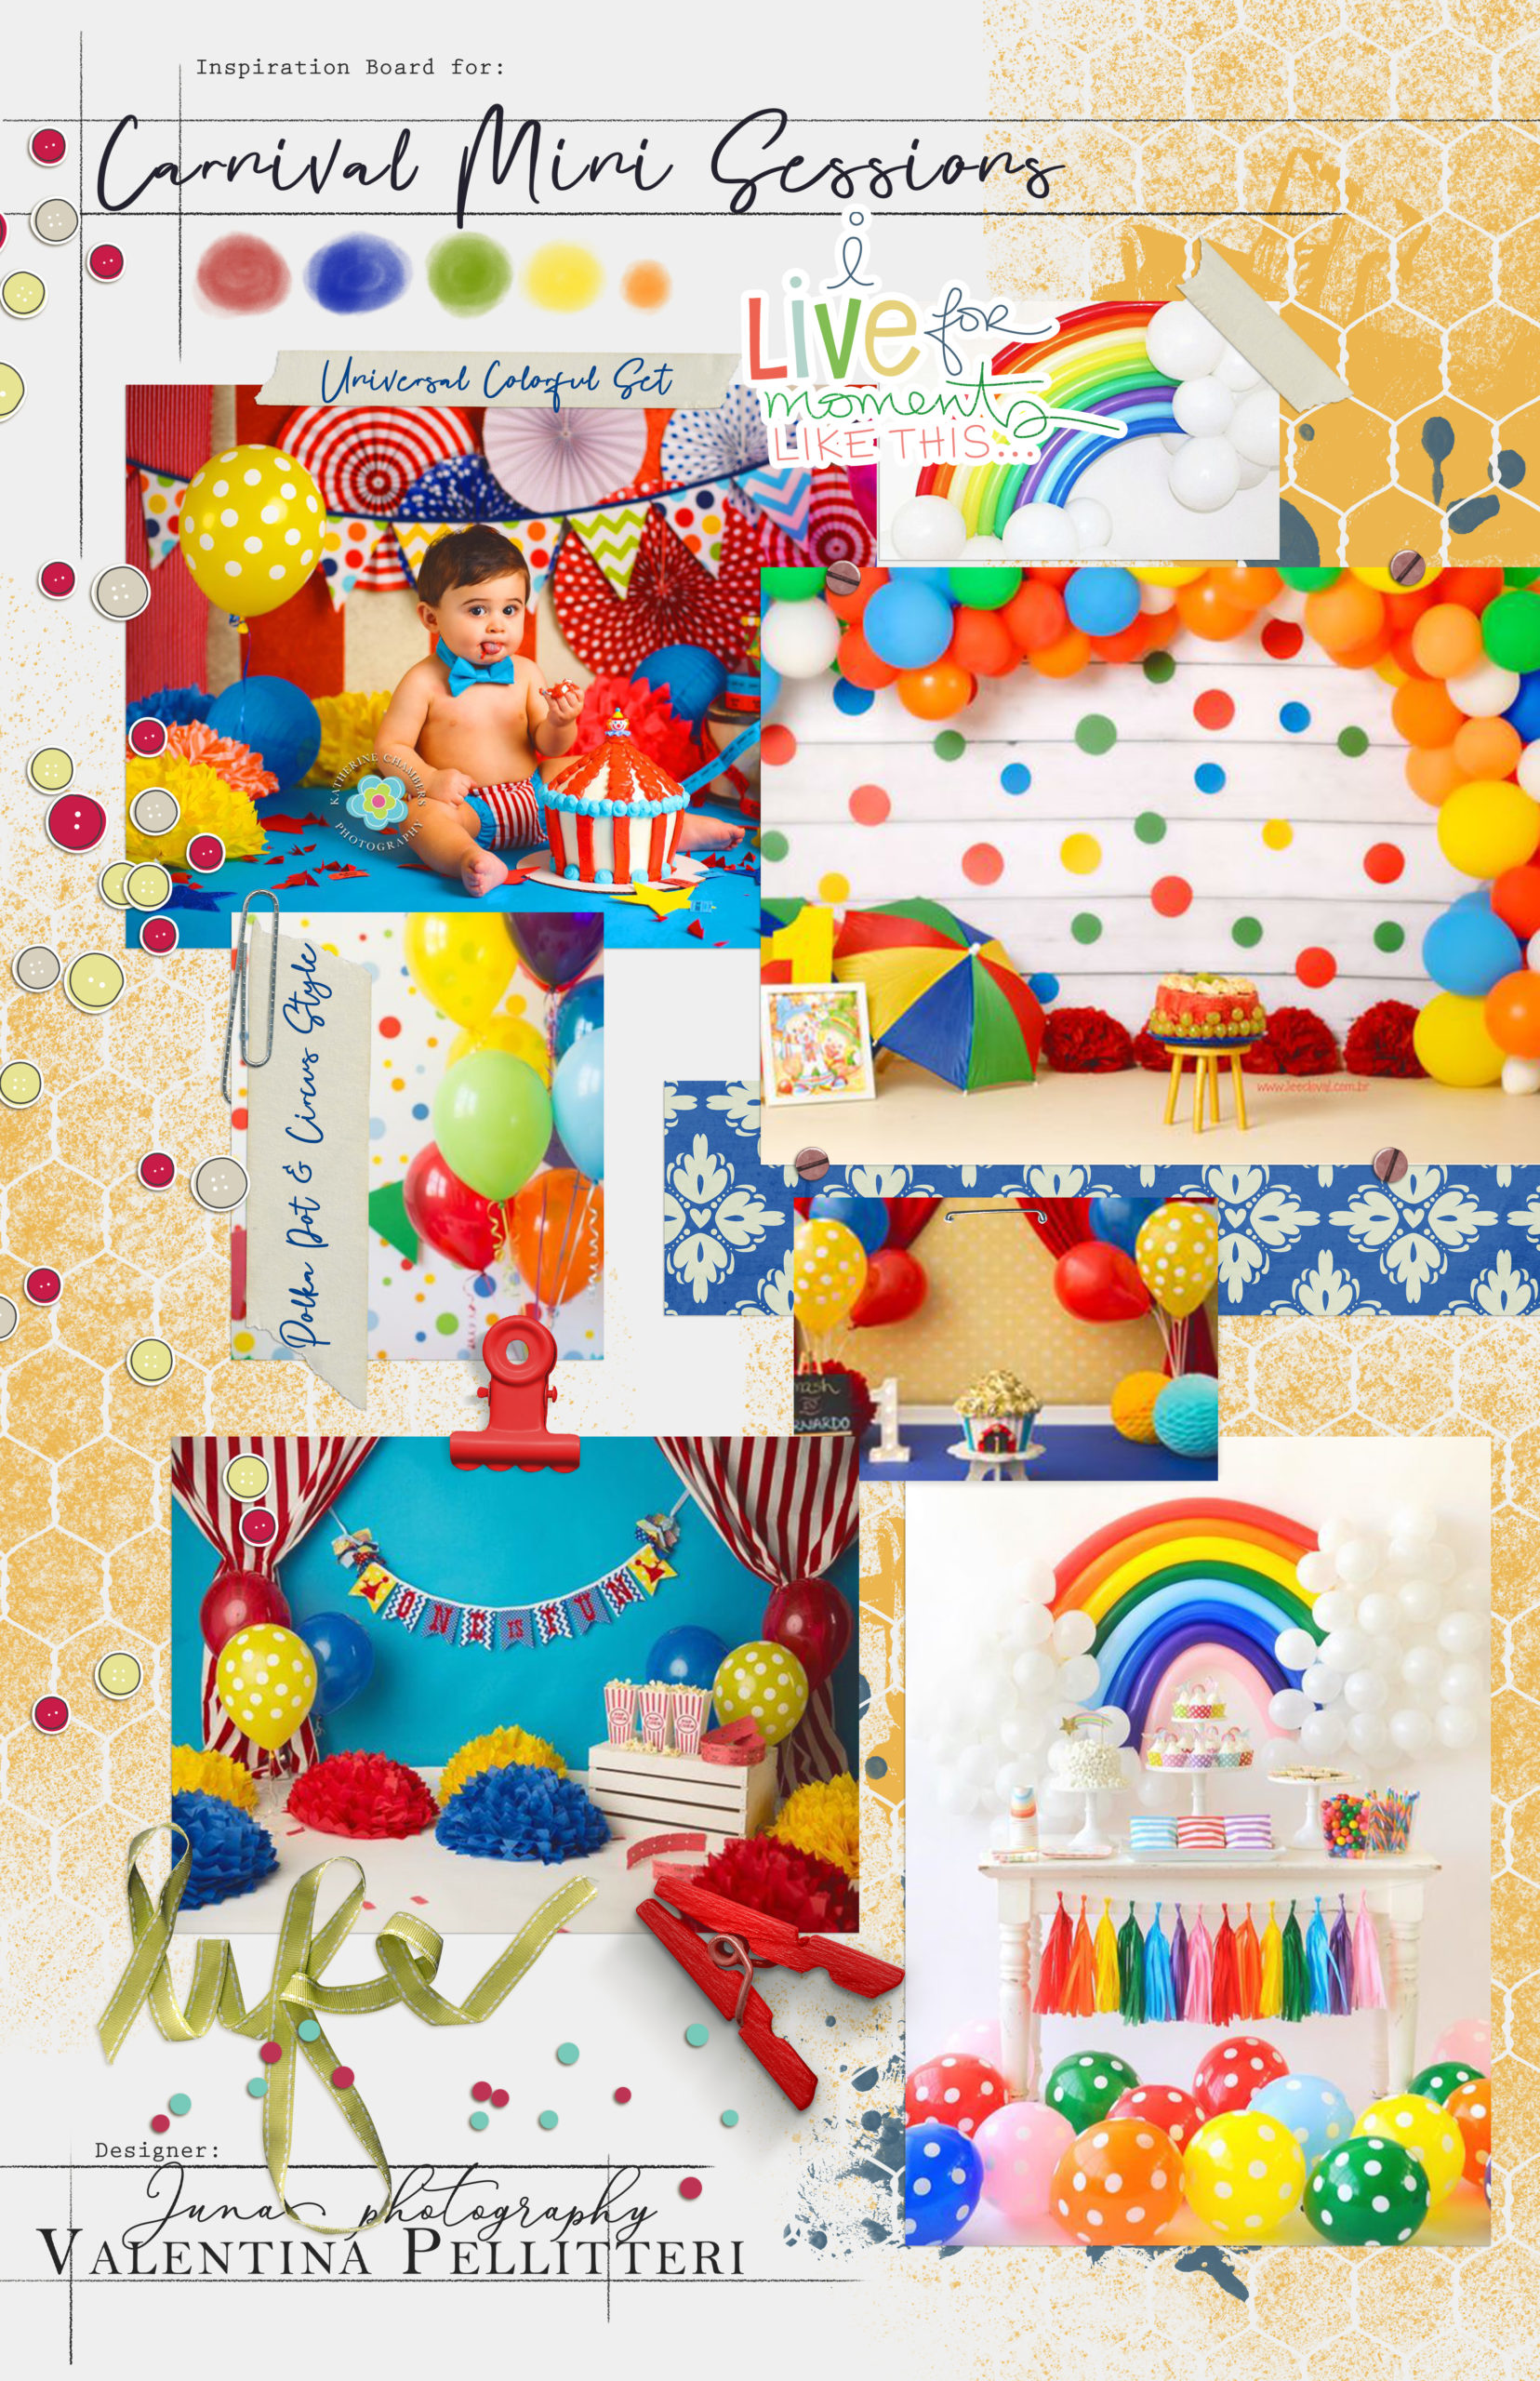 Moodboard mini sessione di carnevale by Juna Photography